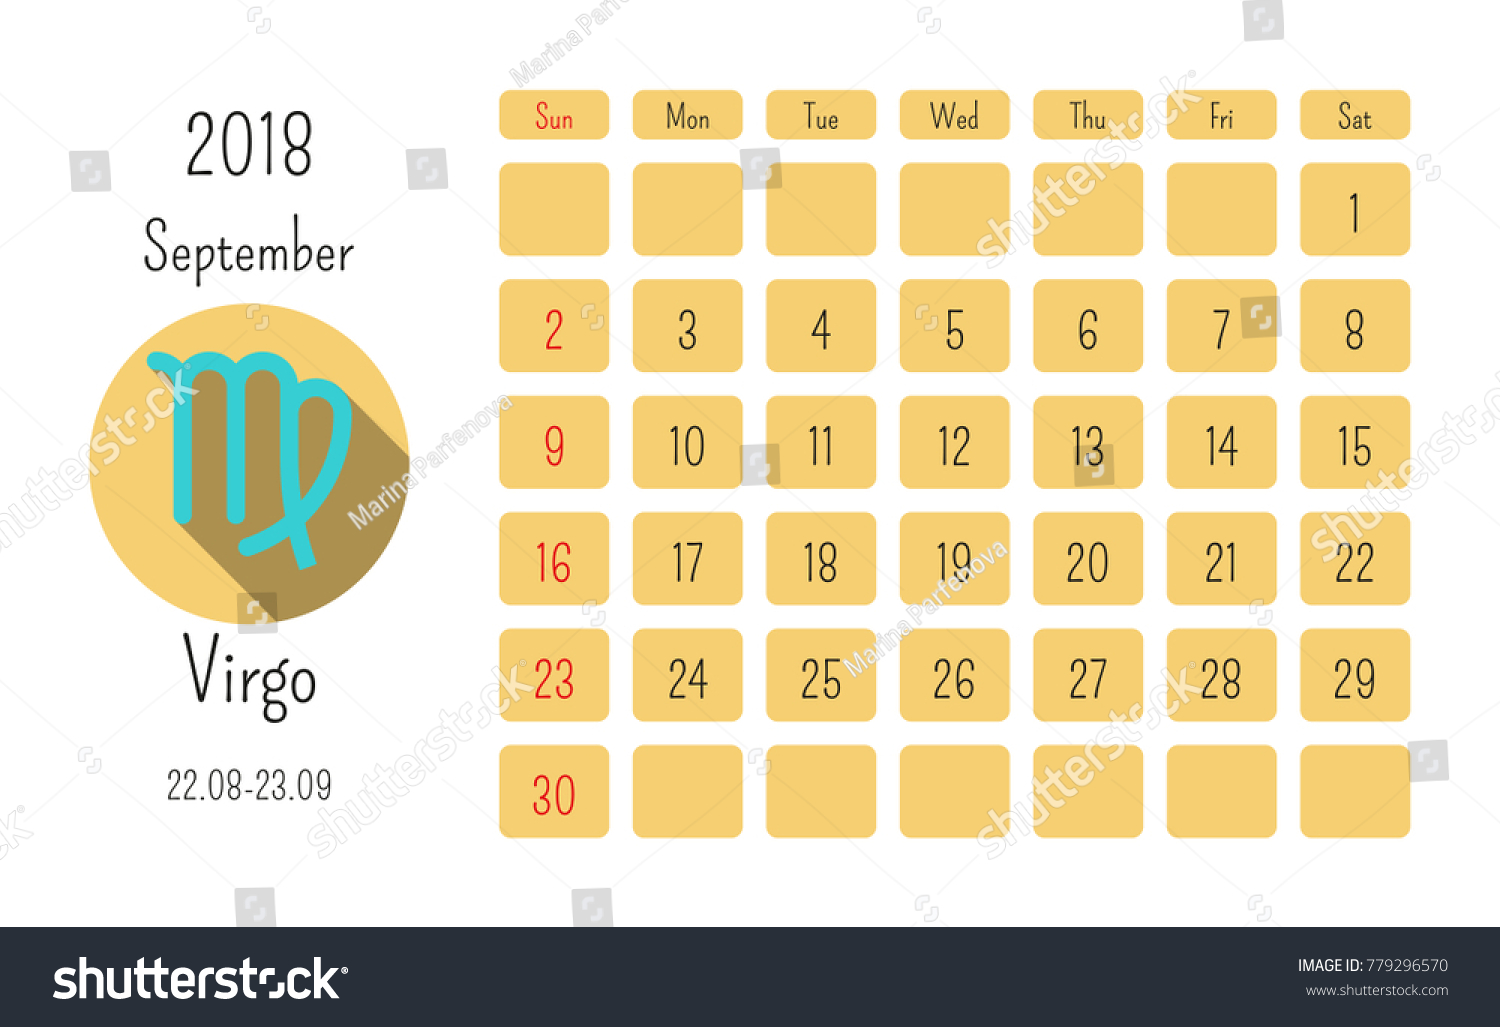 September calendar 2018 horoscope signs zodiac stock vector september calendar 2018 with horoscope signs zodiac symbols flat colored template biocorpaavc Image collections